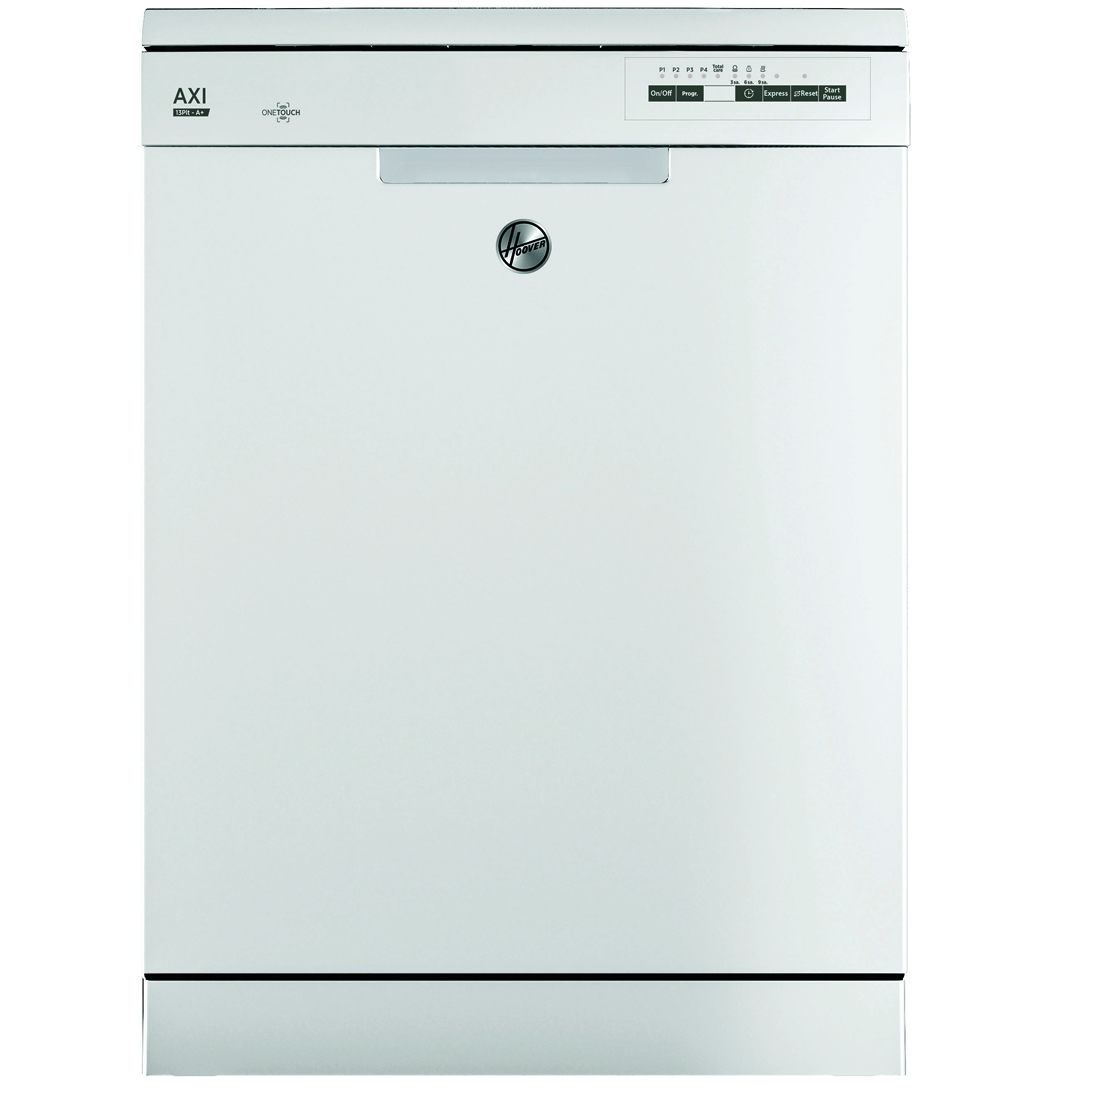 13-Place Dishwasher 5 Progs Class A+ One Touch White